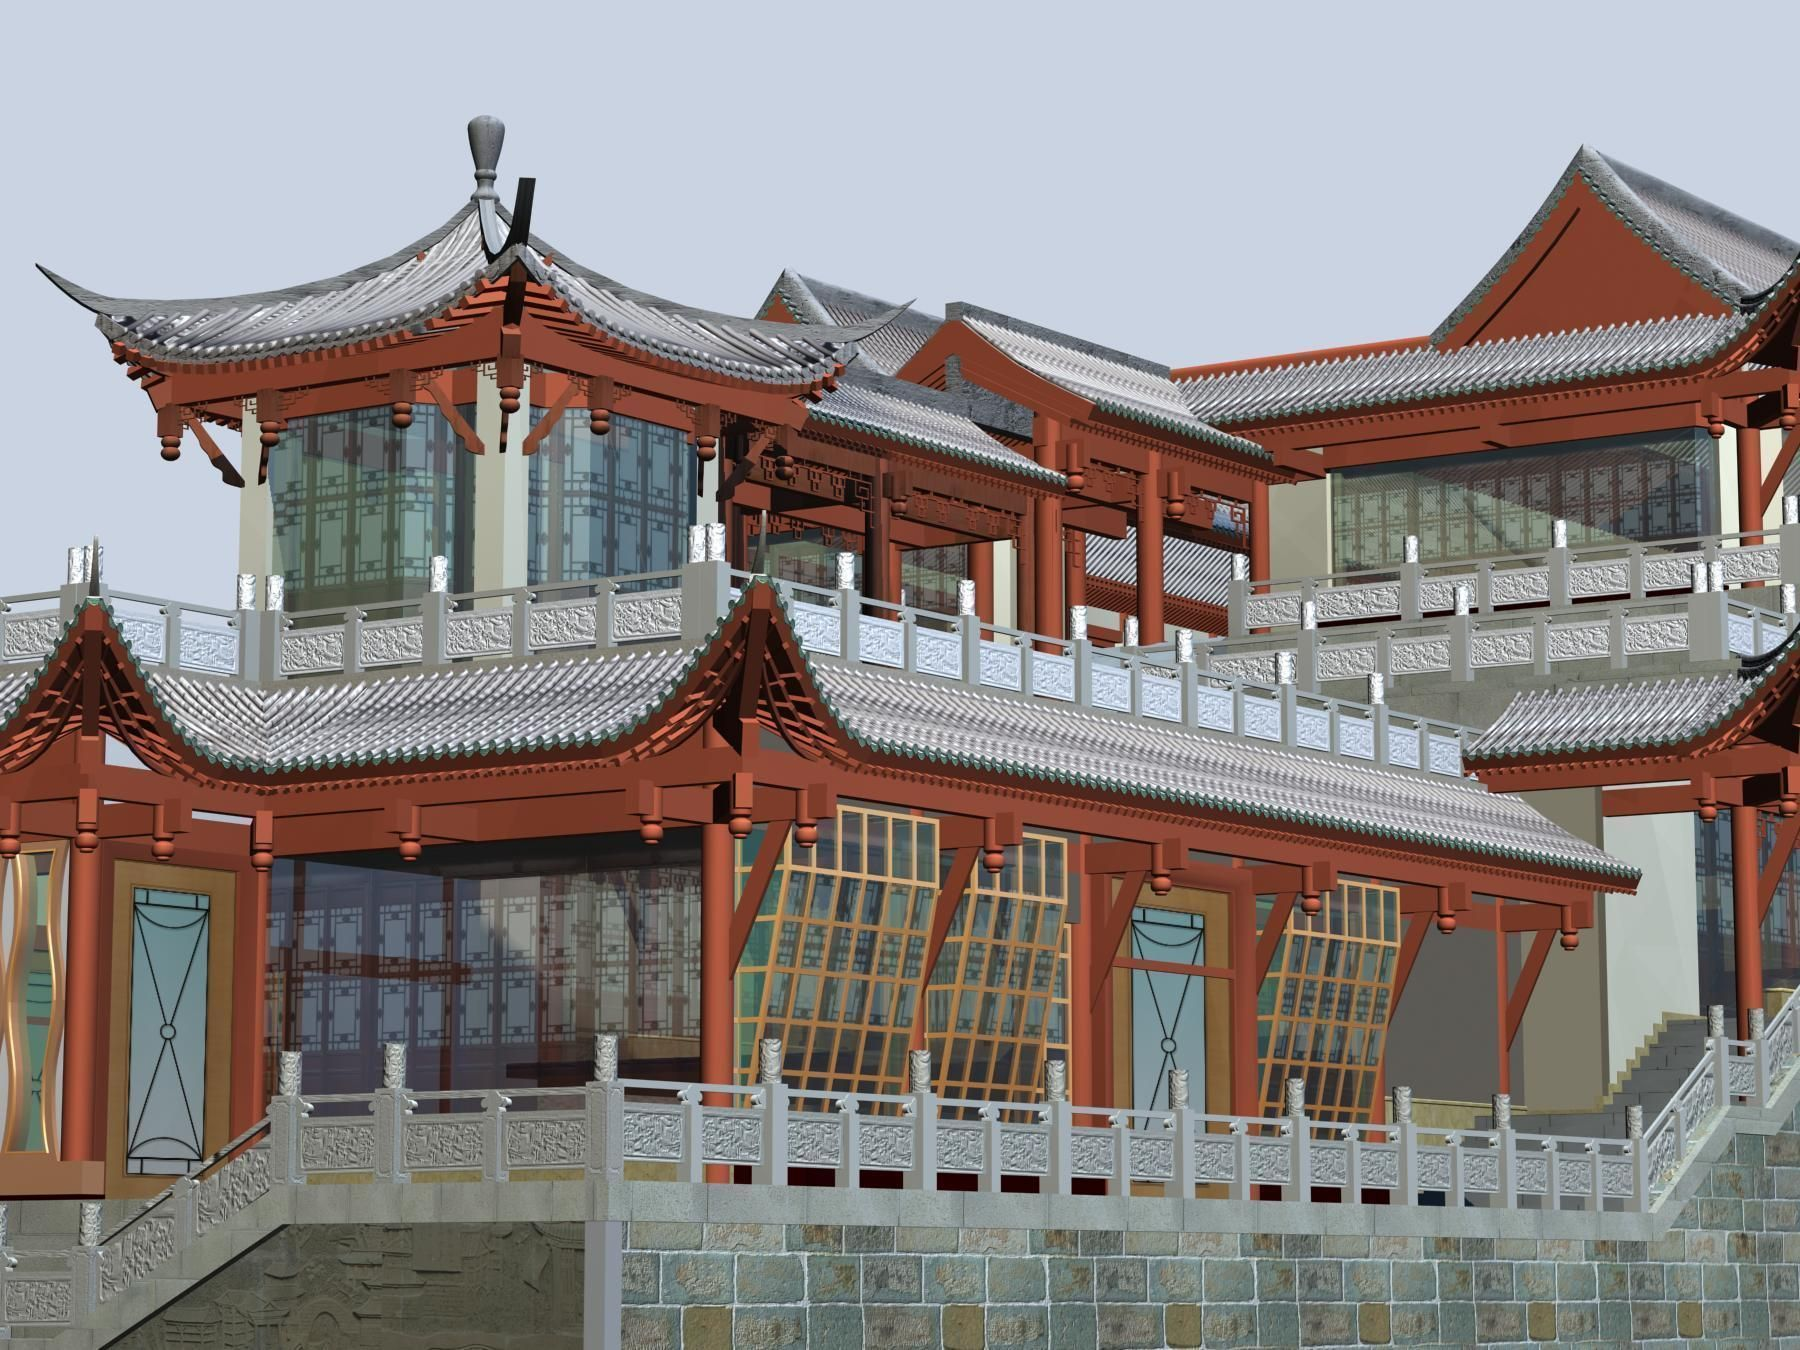 Anshun China  city photos gallery : China ancient birdgr 2 AnSHun day scene 3D Model .max .3ds CGTrader ...